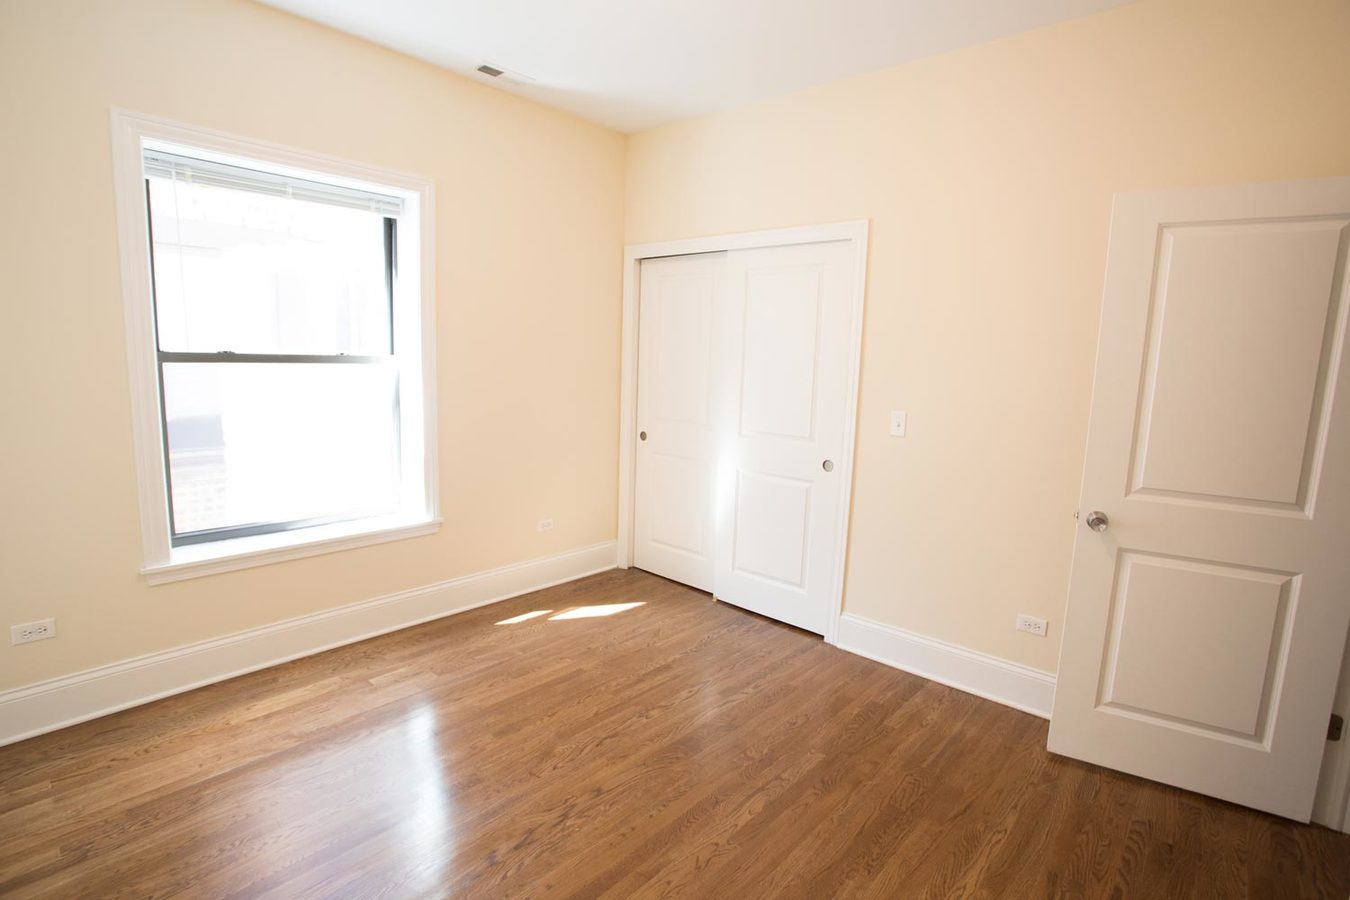 4 Bedrooms 1 Bathroom Apartment for rent at 5111 S. Kimbark Avenue in Chicago, IL